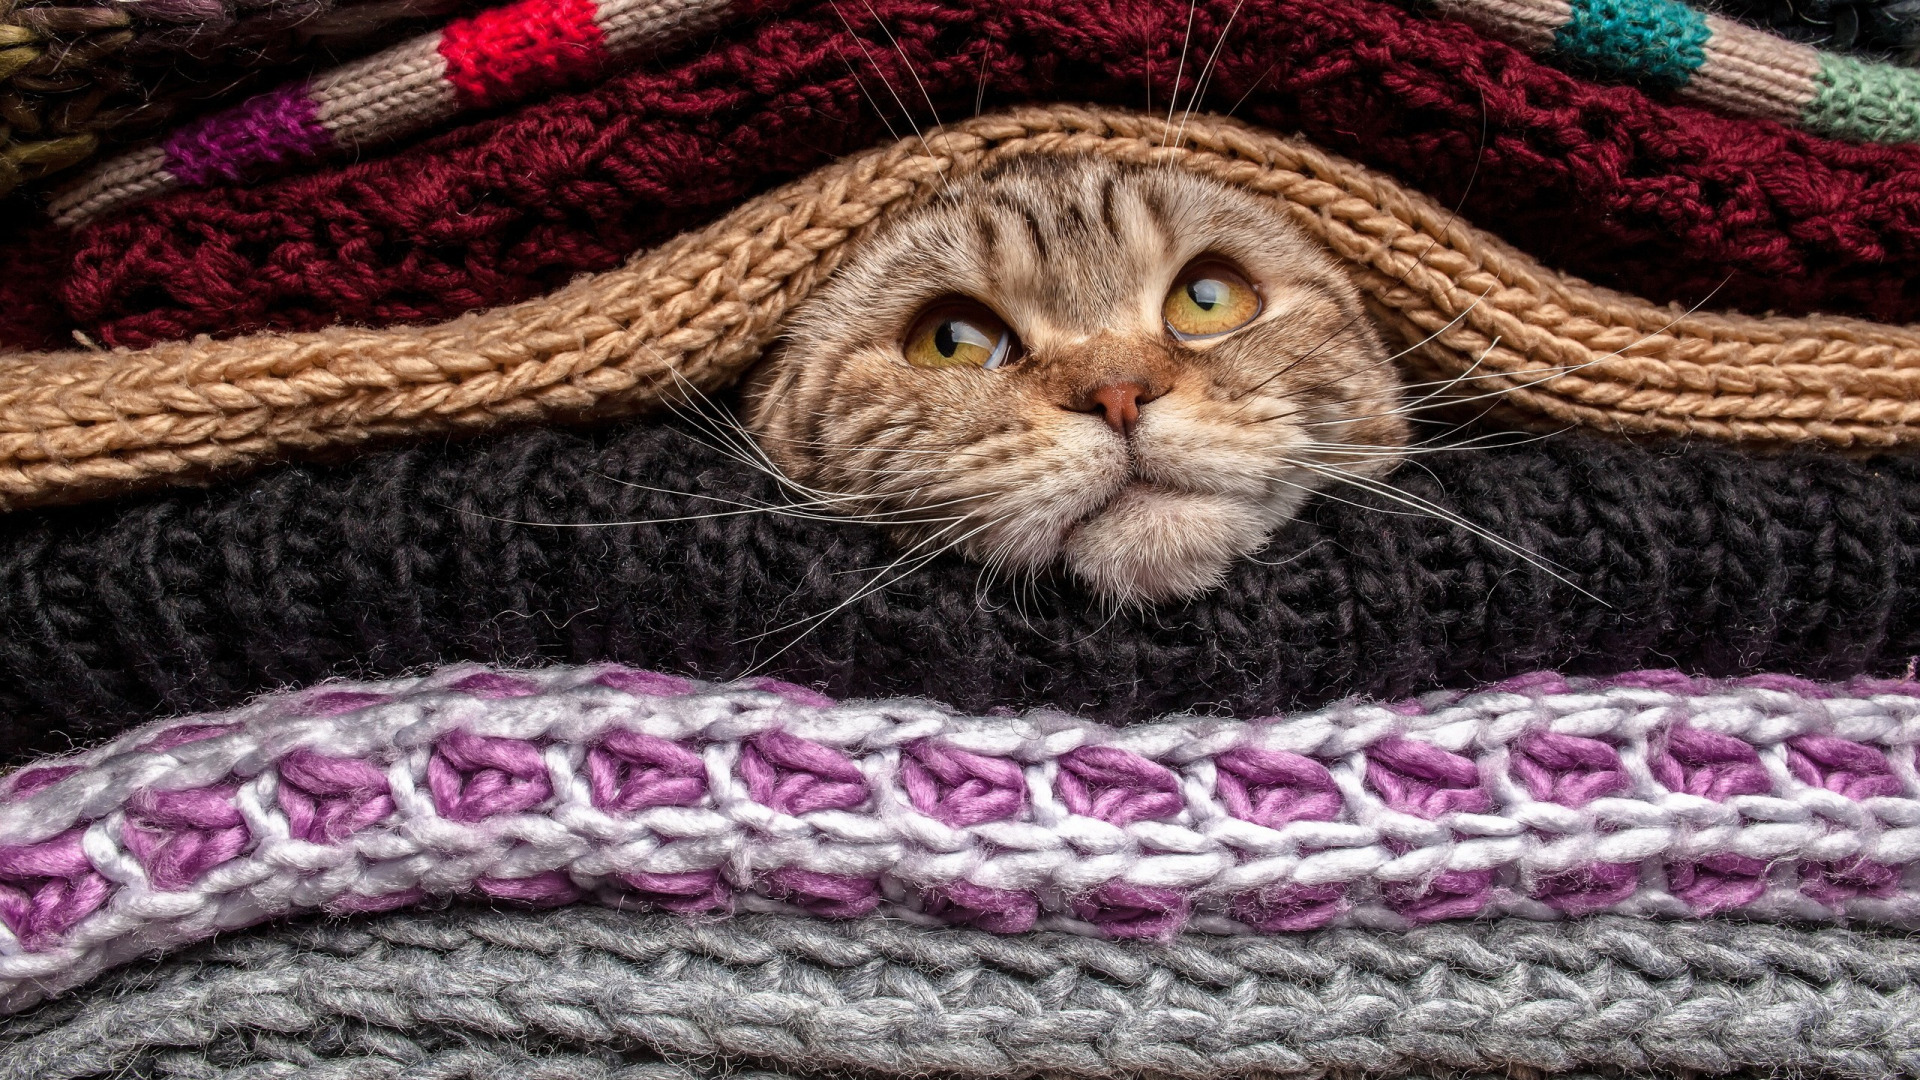 Download Wallpaper Eyes Cat Animal Funny Cute Situation Pet Head Covered Mustache Nose Gaze Sweater Wool Section Cats In Resolution 1920x1080